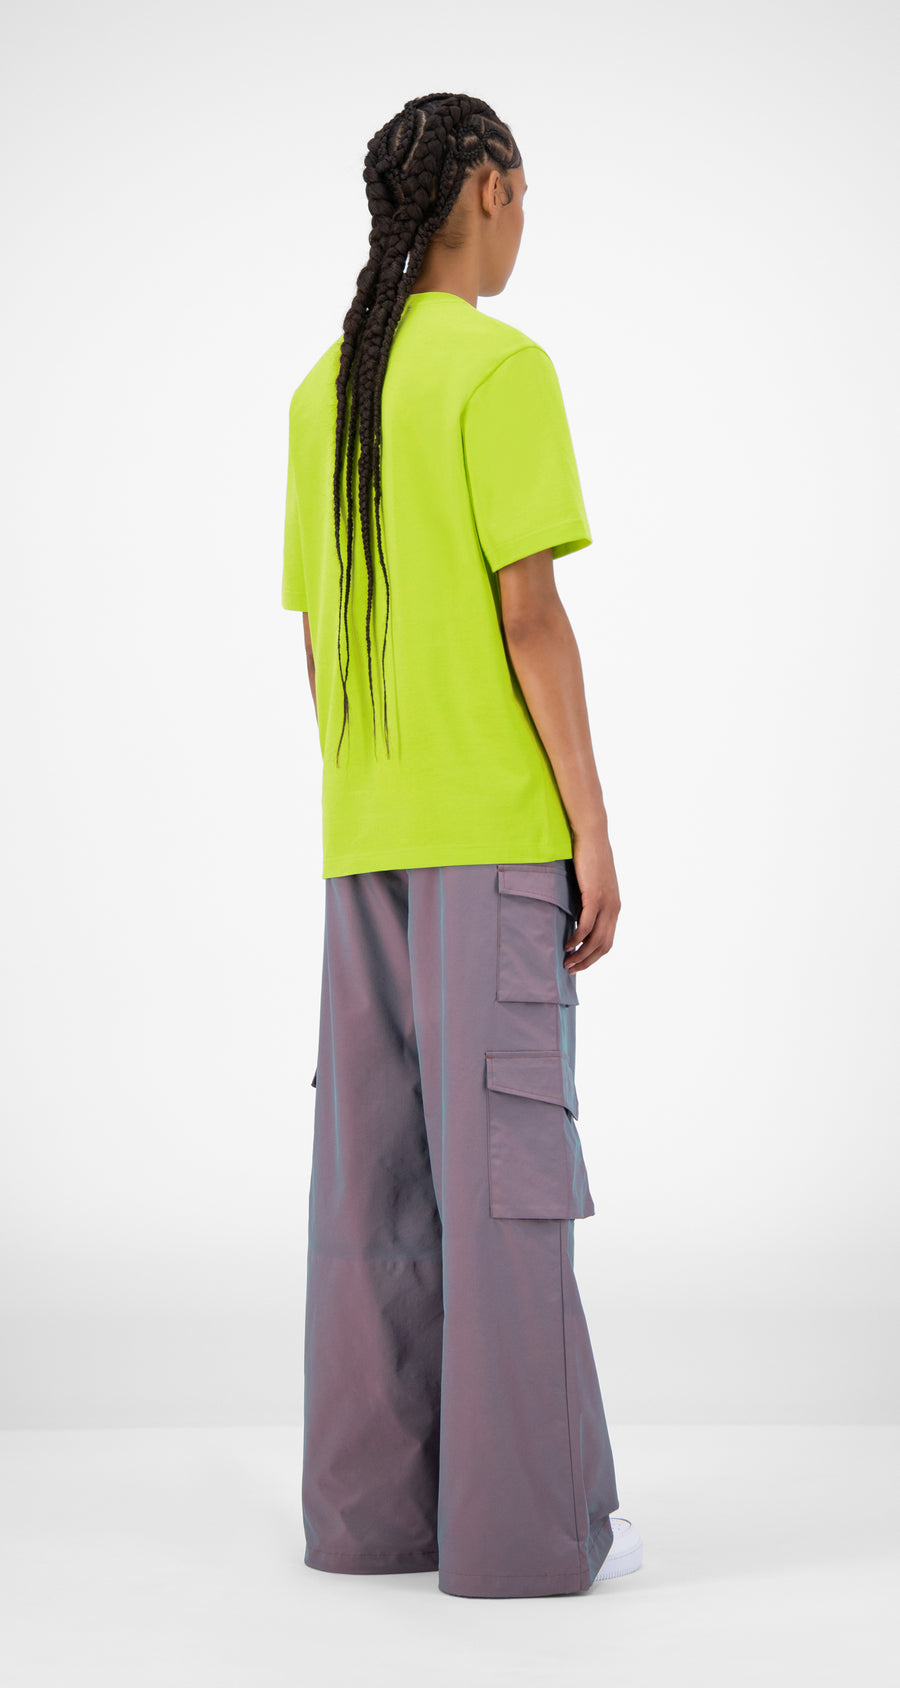 Daily Paper - Acid Lime Joraci T-Shirt - Women Rear